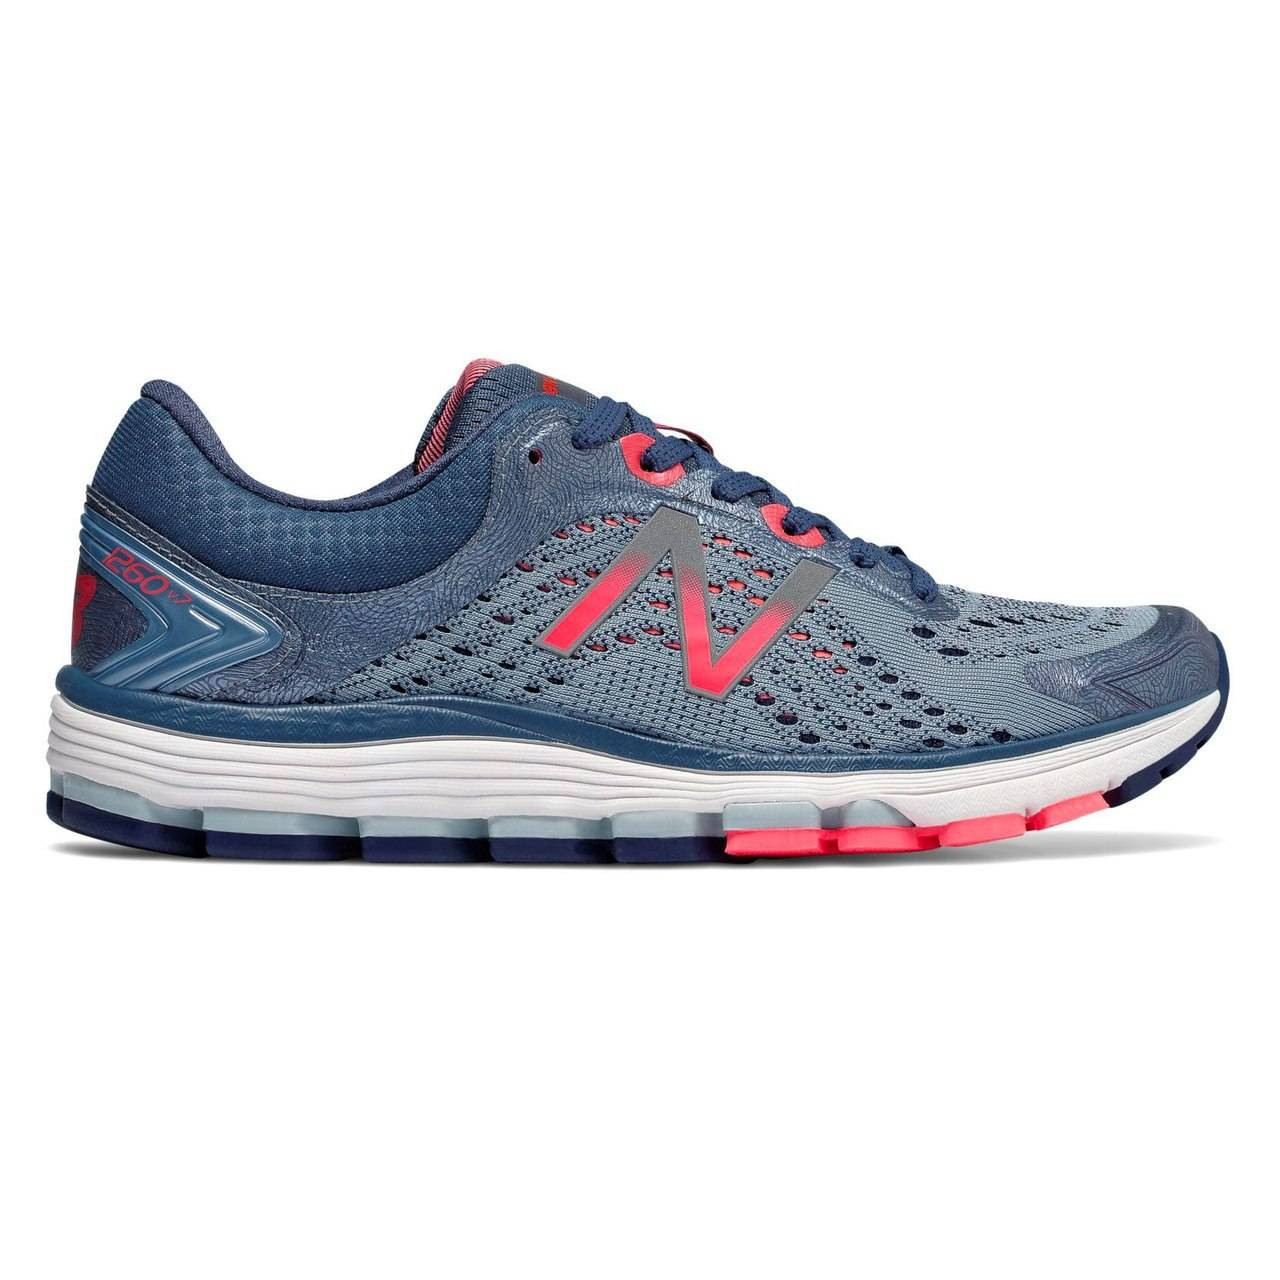 New Balance 1260v7 Women's Running - Reflection with Vintage Indigo & Vivid Coral